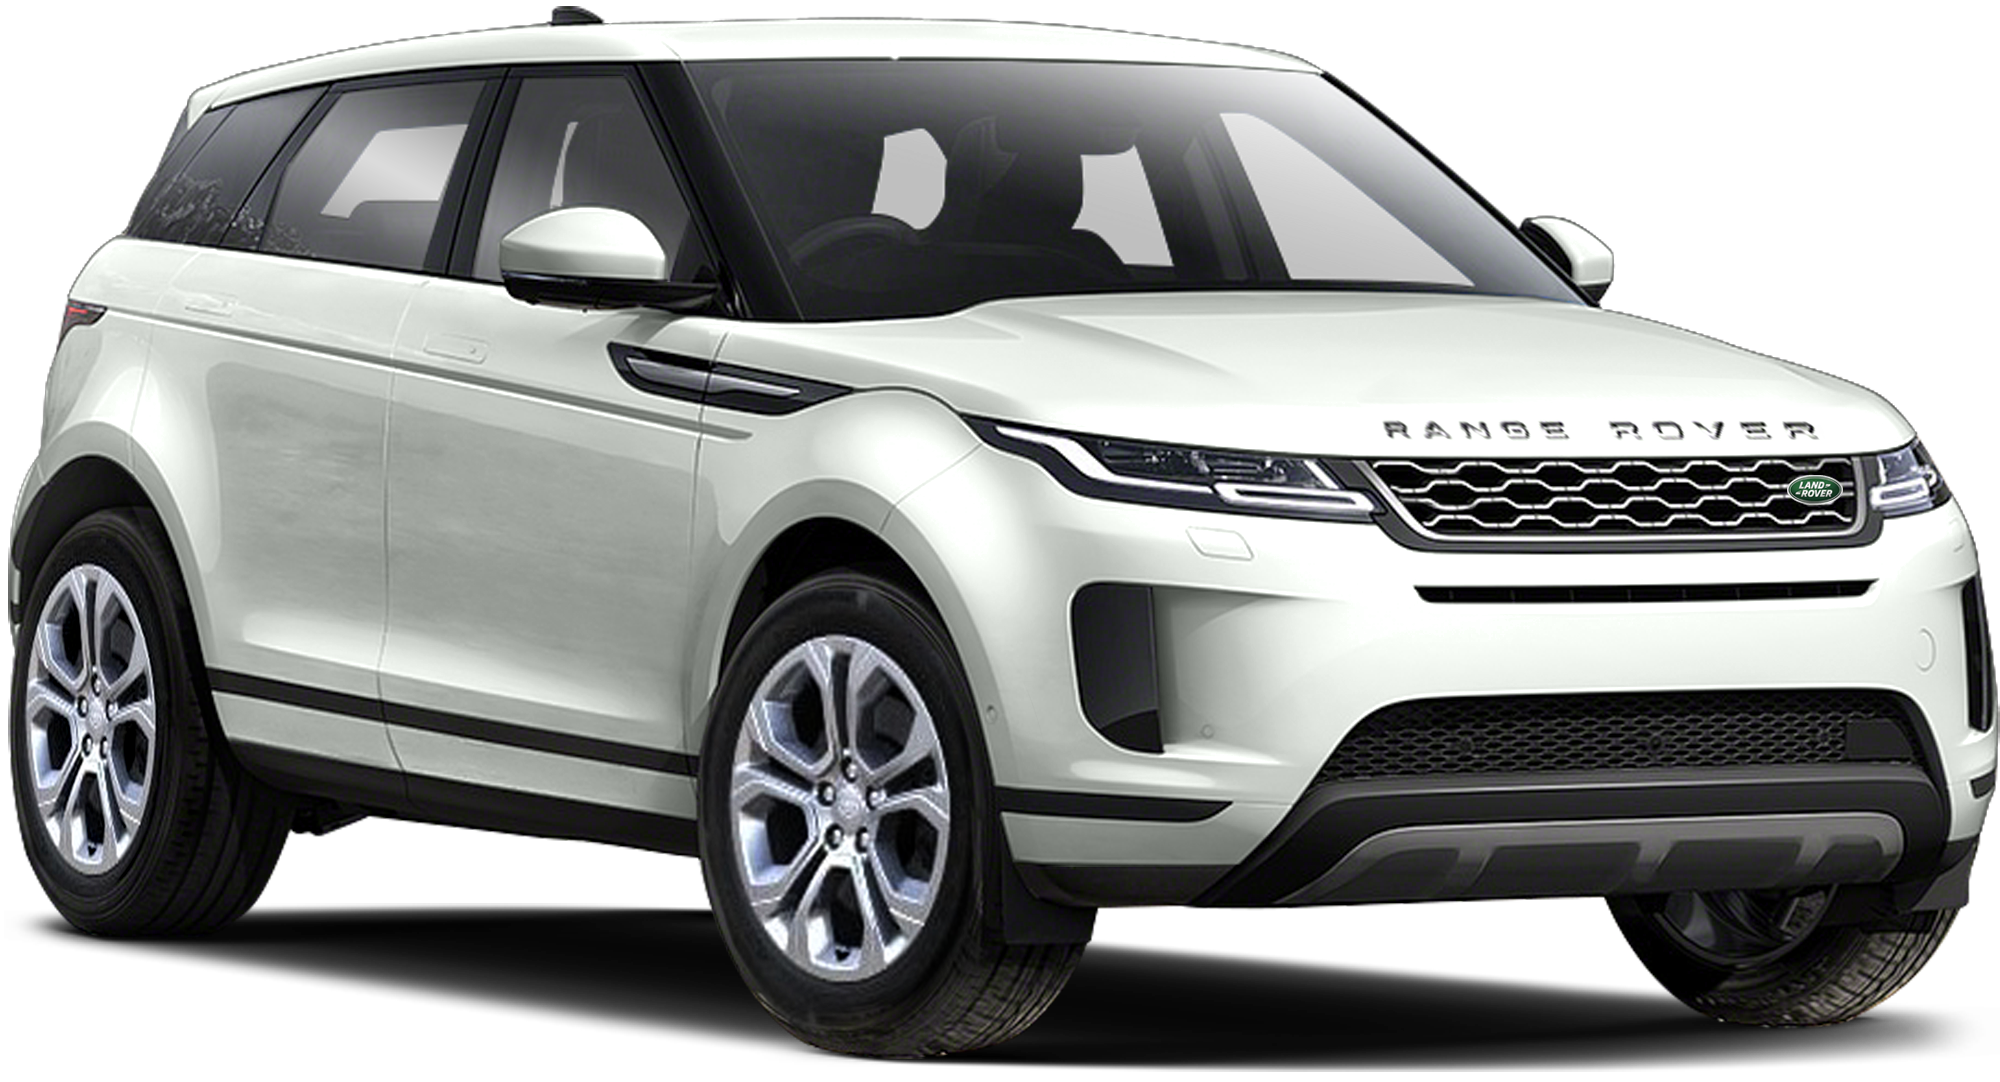 Range Rover Norwood >> The Range Rover Evoque Is Available Now In Norwood Land